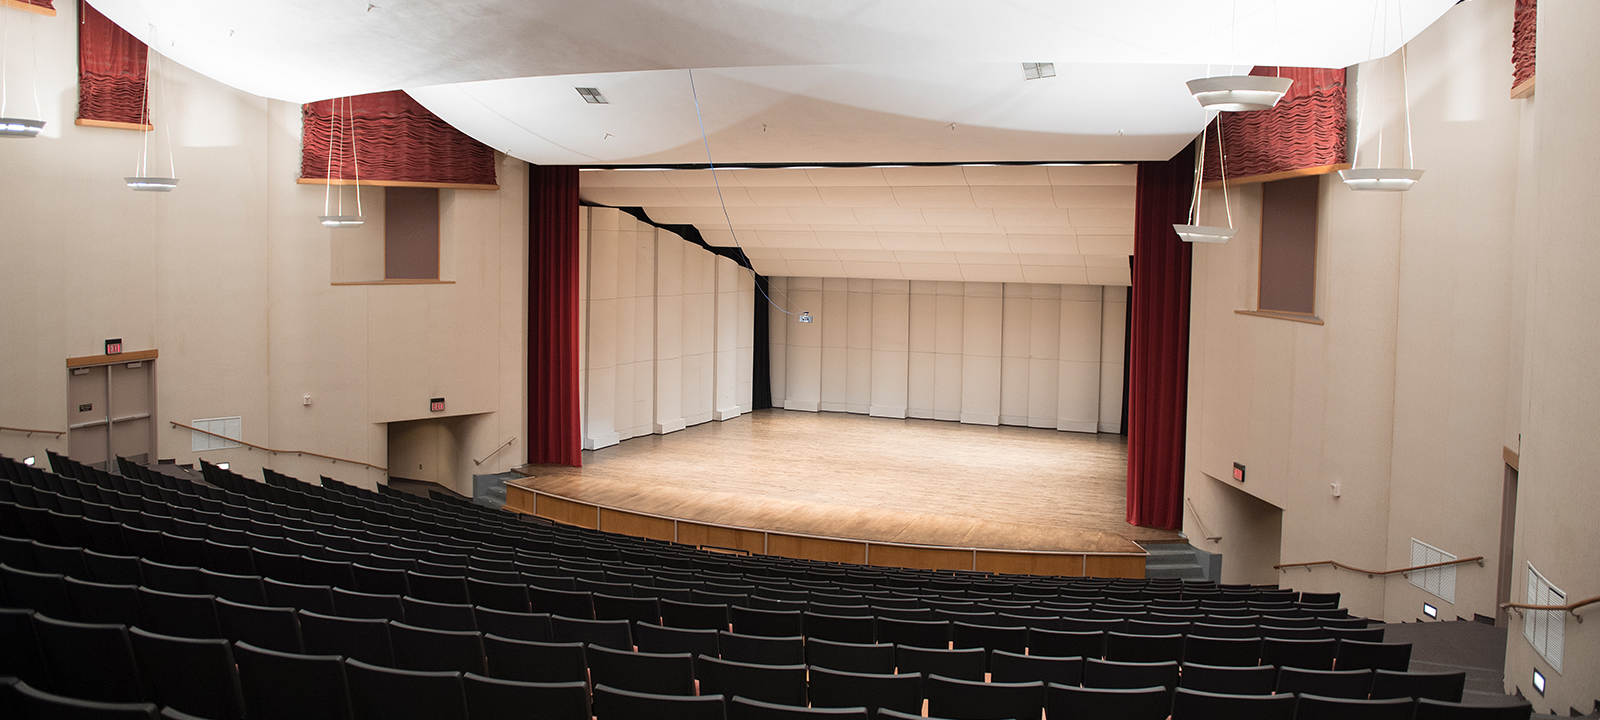 Roussel Hall hosts weekly concerts, dance performances and lectures. Inquire to rent the hall today.